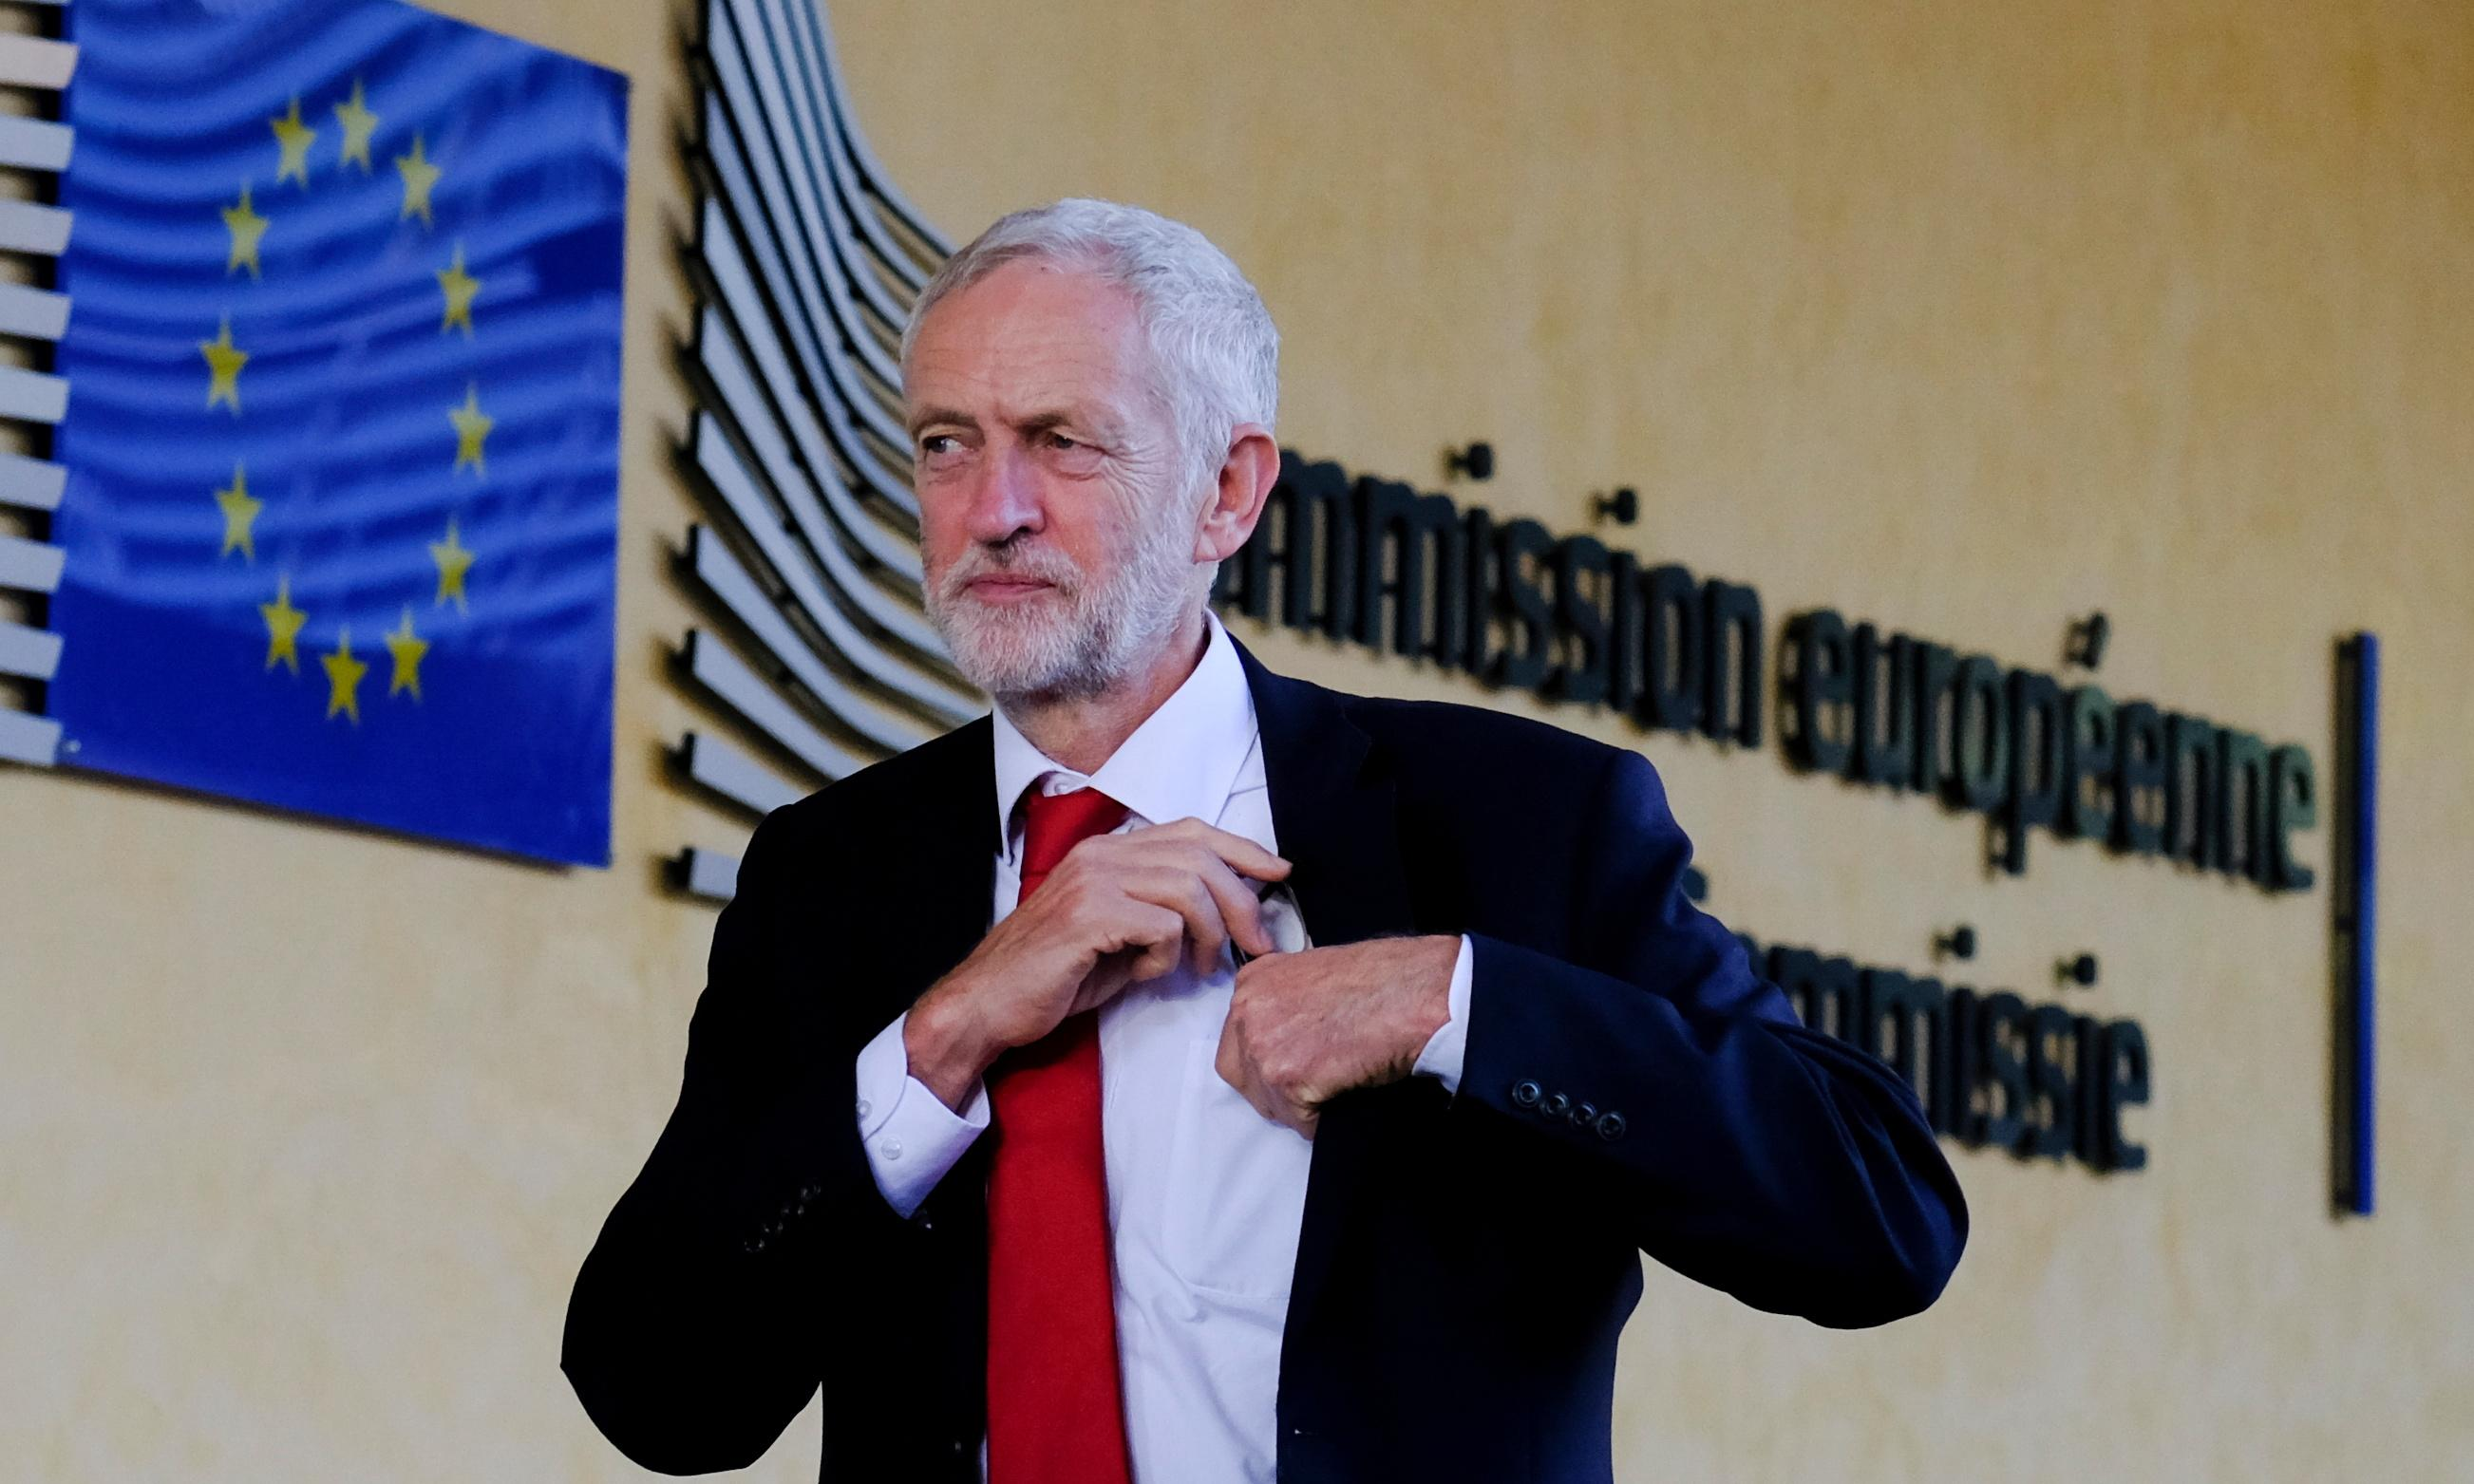 Corbyn to hold Brexit talks with Barnier and Verhofstadt